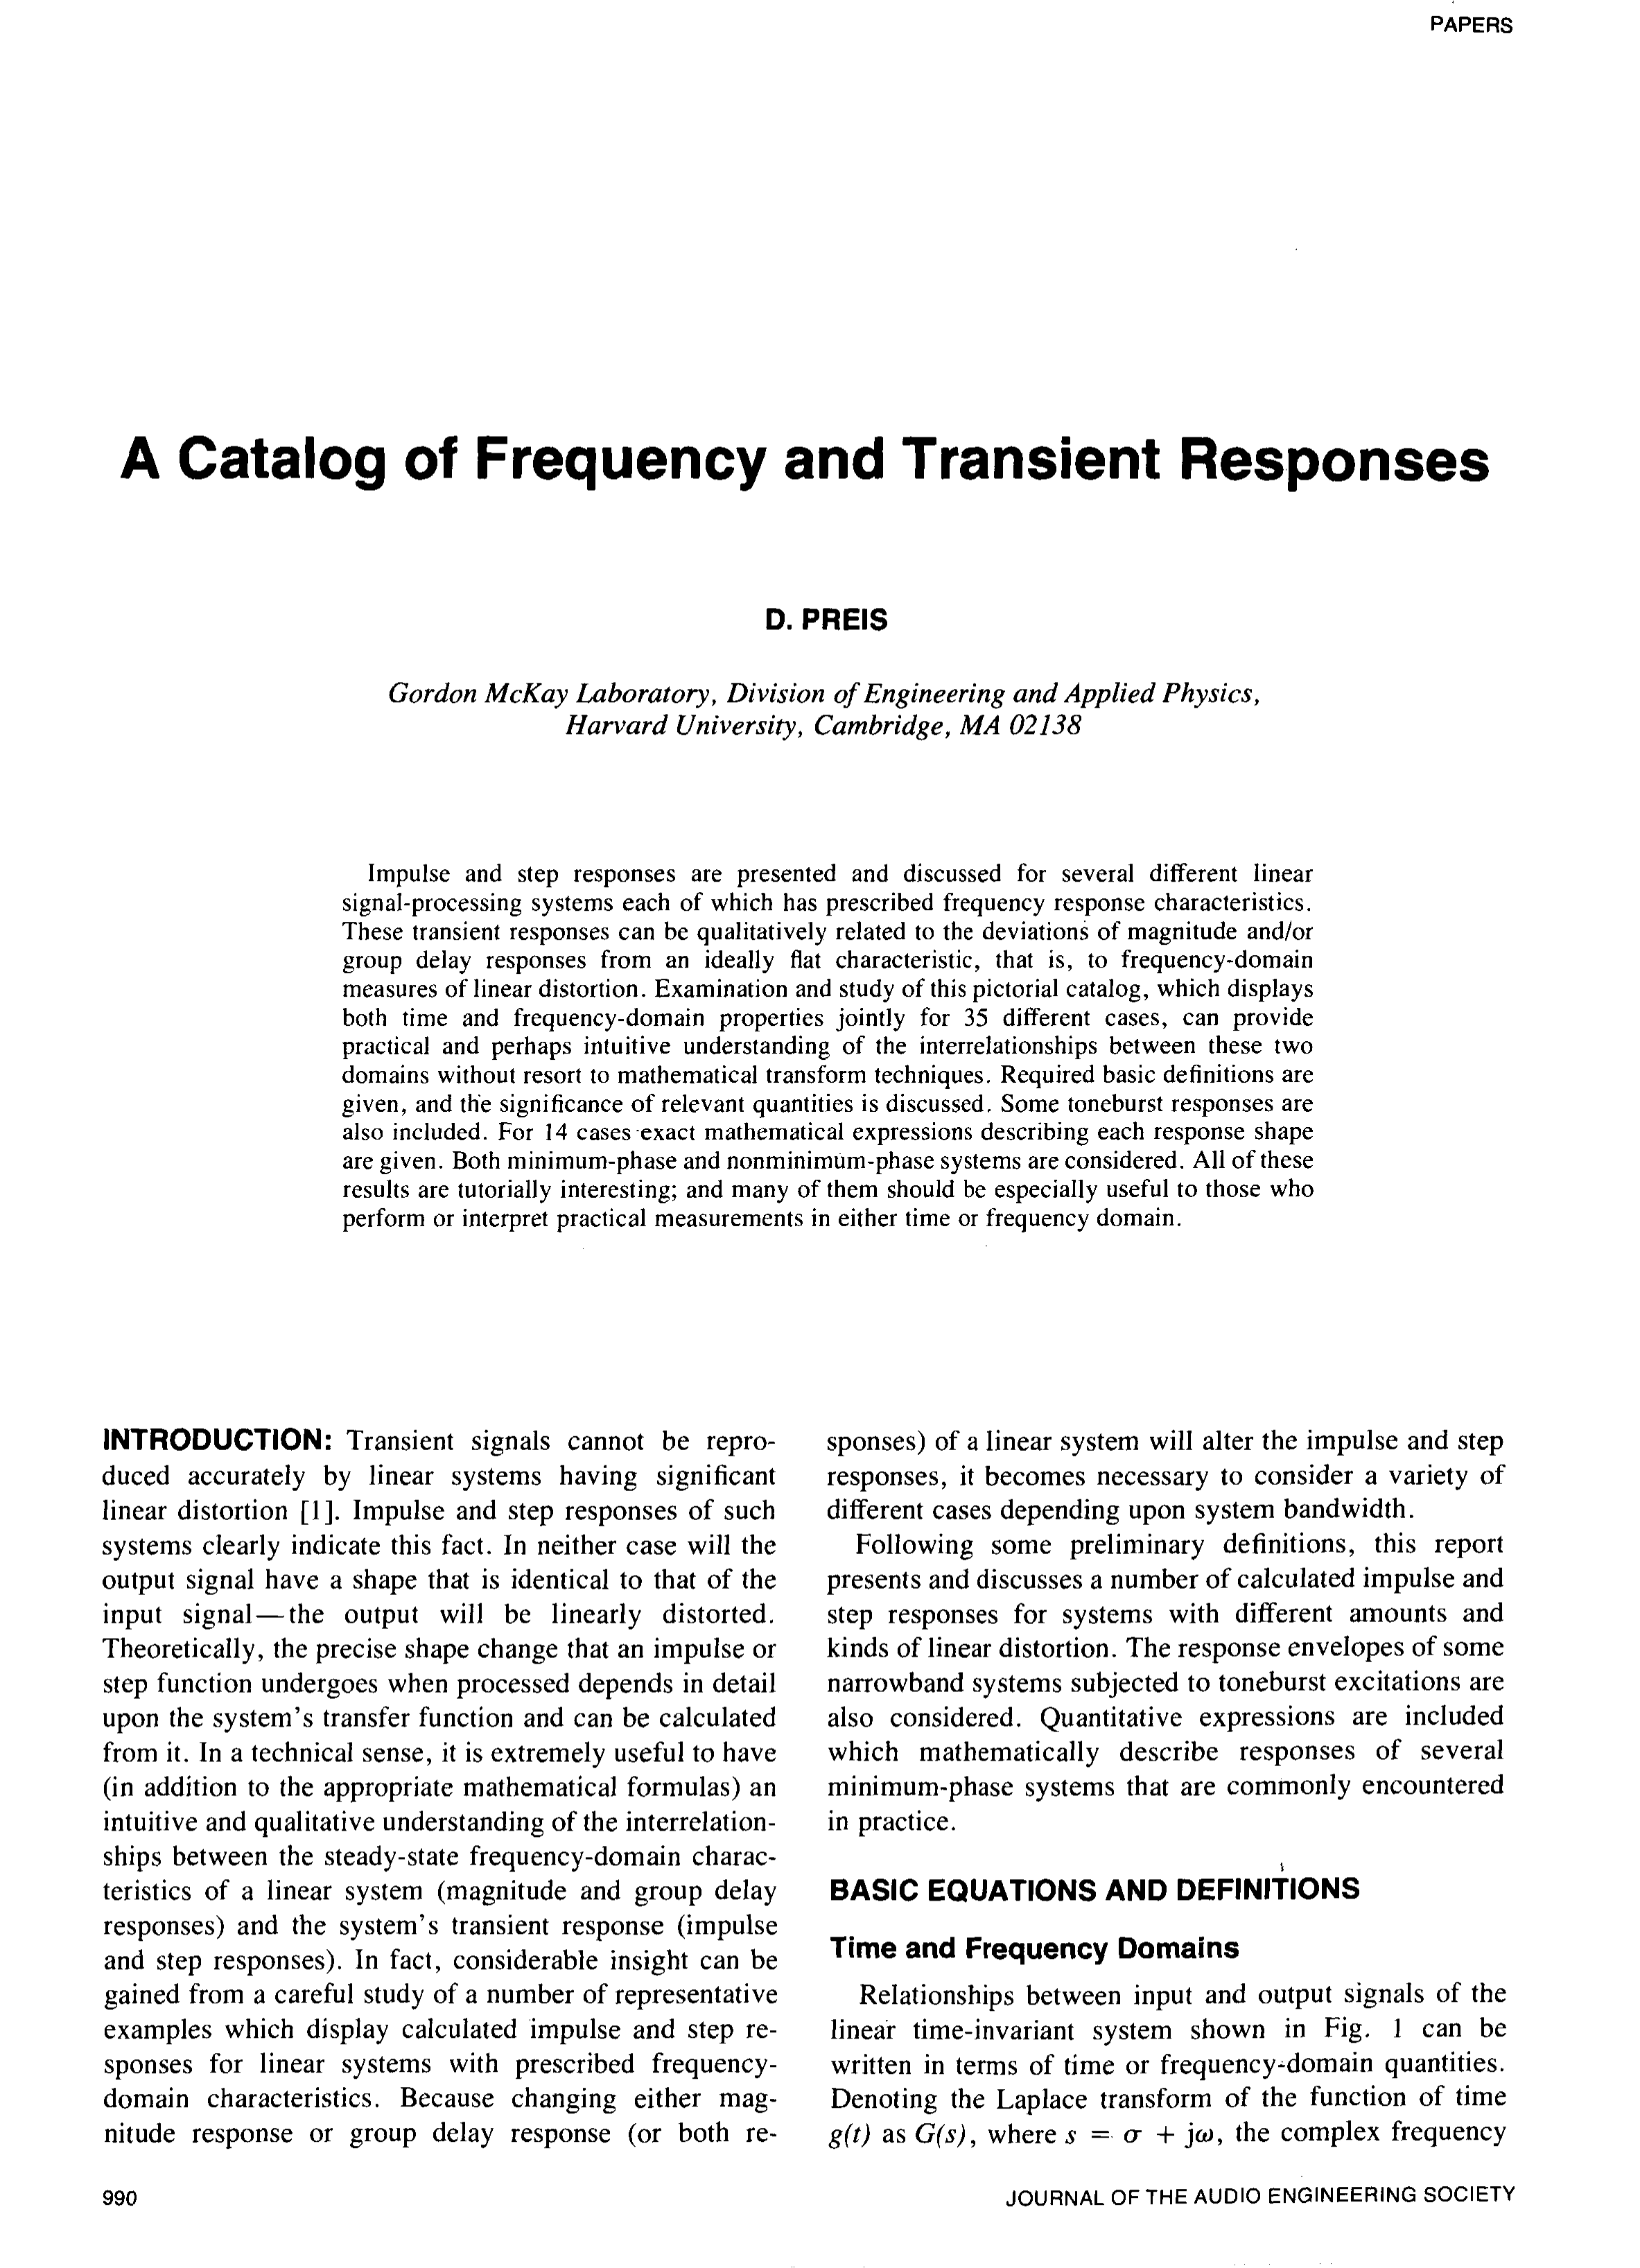 Aes E Library A Catalog Of Frequency And Transient Responses